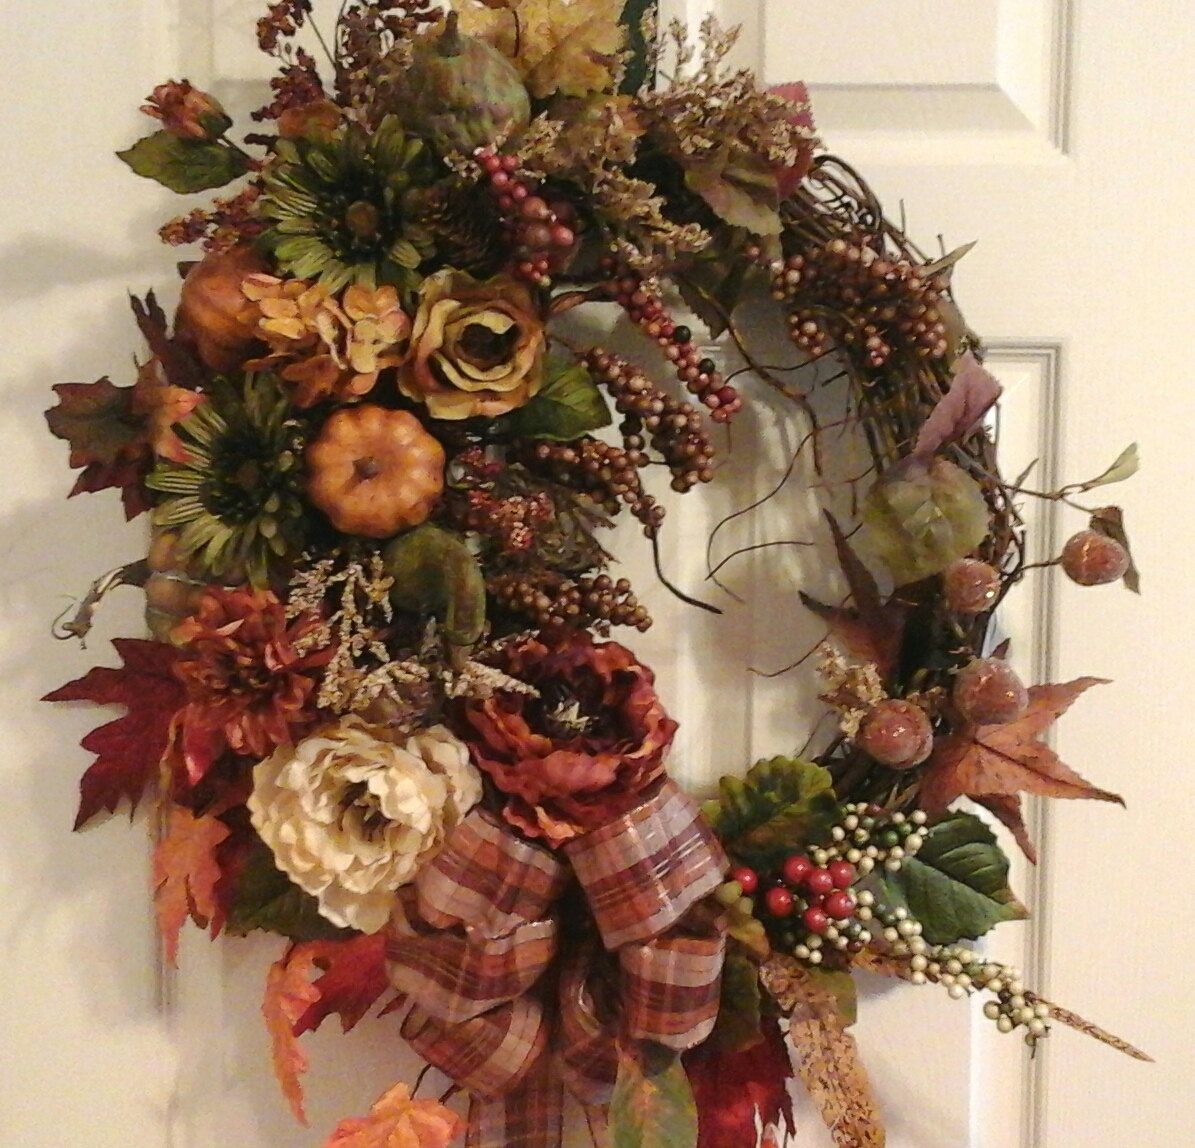 Fall Wreath Tuscan Autumn Thanksgiving Wreath Elegant Oval Grapevine Wreath Door Wall Mantel Living Room Wreath SHIPPING INCLUDED by ... & Fall Wreath Tuscan Autumn Thanksgiving Wreath Elegant Oval ...